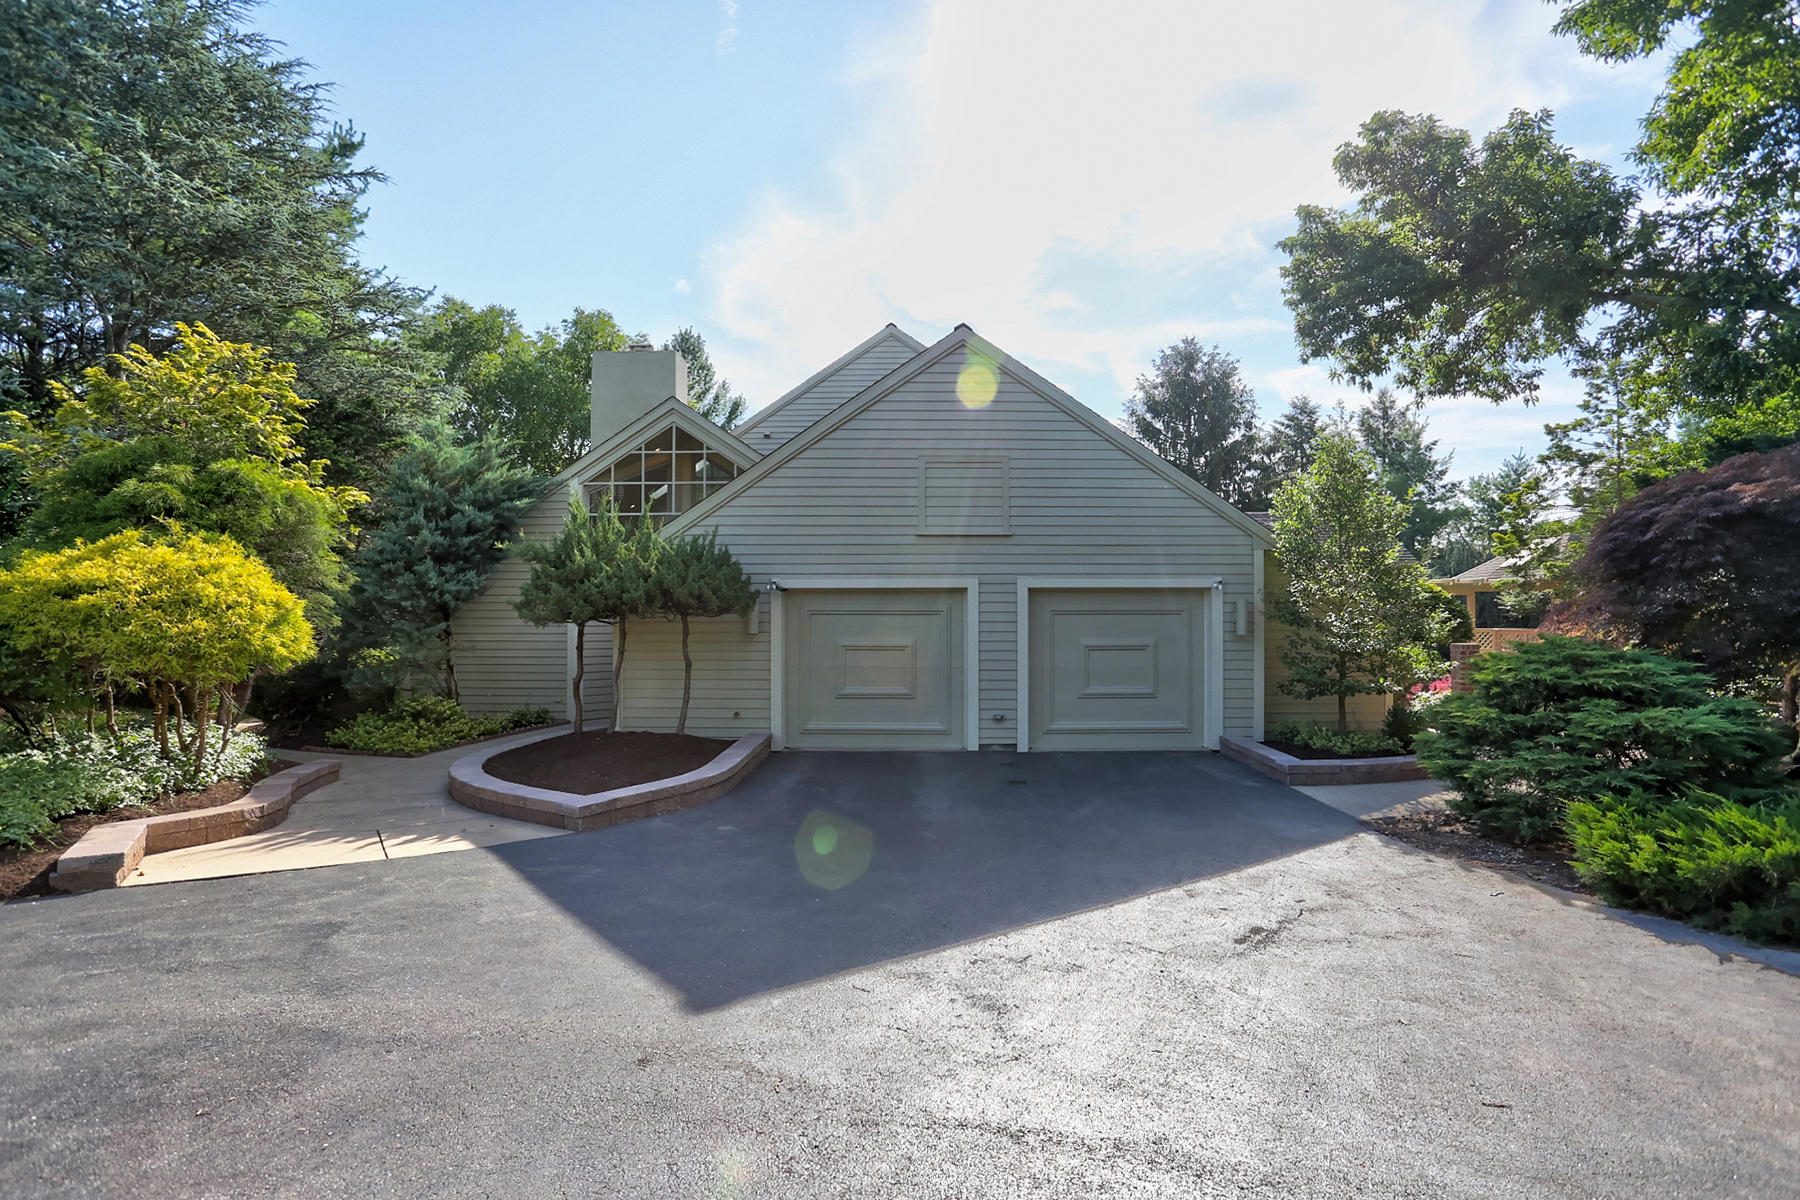 Additional photo for property listing at 1302 Beaconfield Lane  Lancaster, Pennsylvania 17601 Estados Unidos